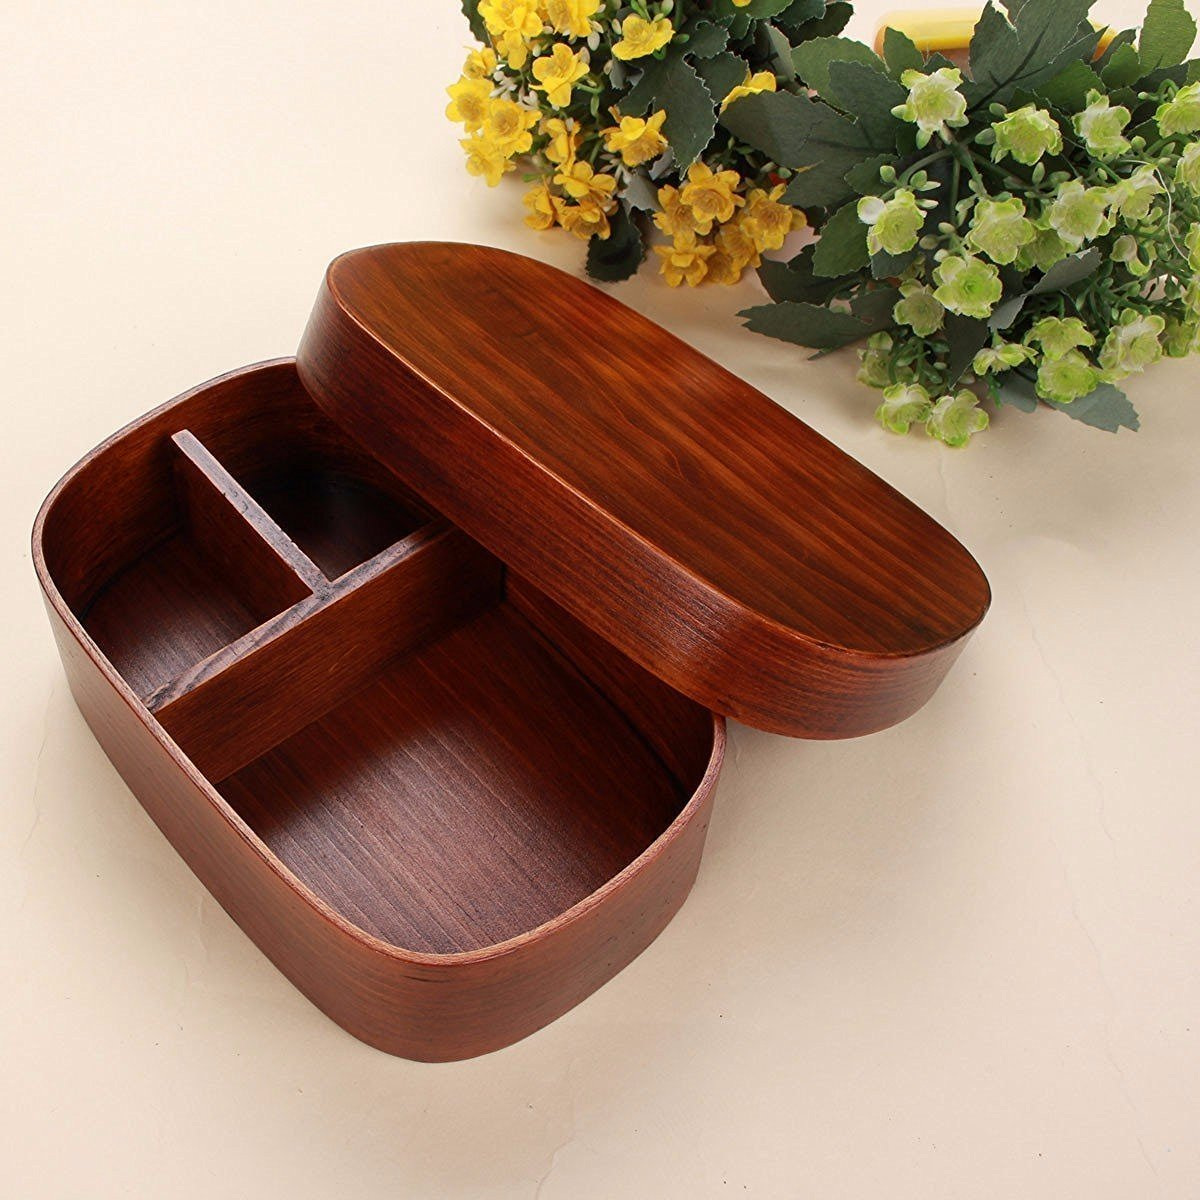 AsentechUK® Japanese Style Wooden Reusable Lunch Box Bento Box Food Fruit Sushi Boxes TRTA11A